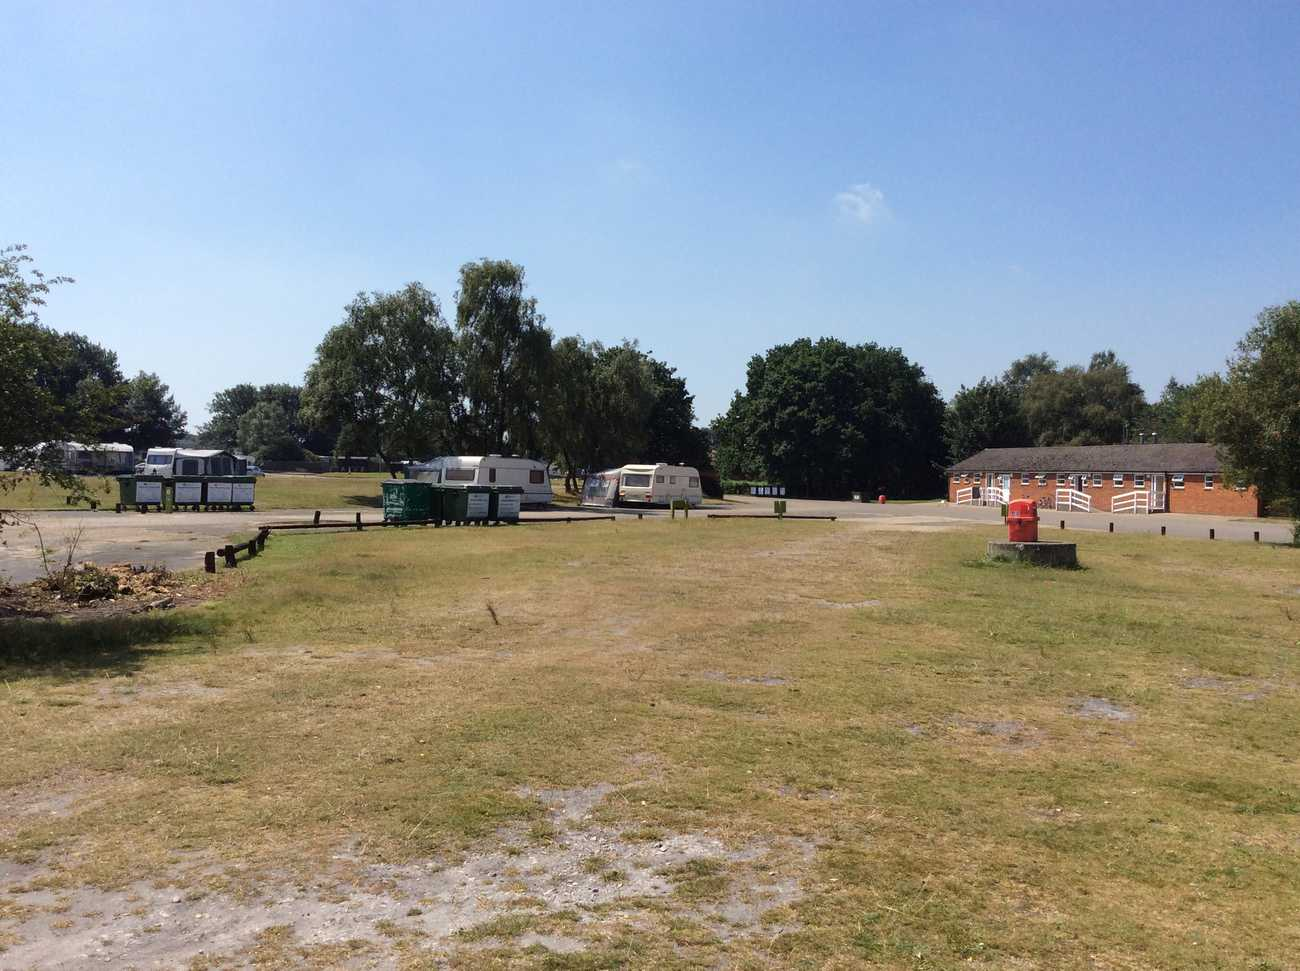 The New Forest - Holmsley campsite